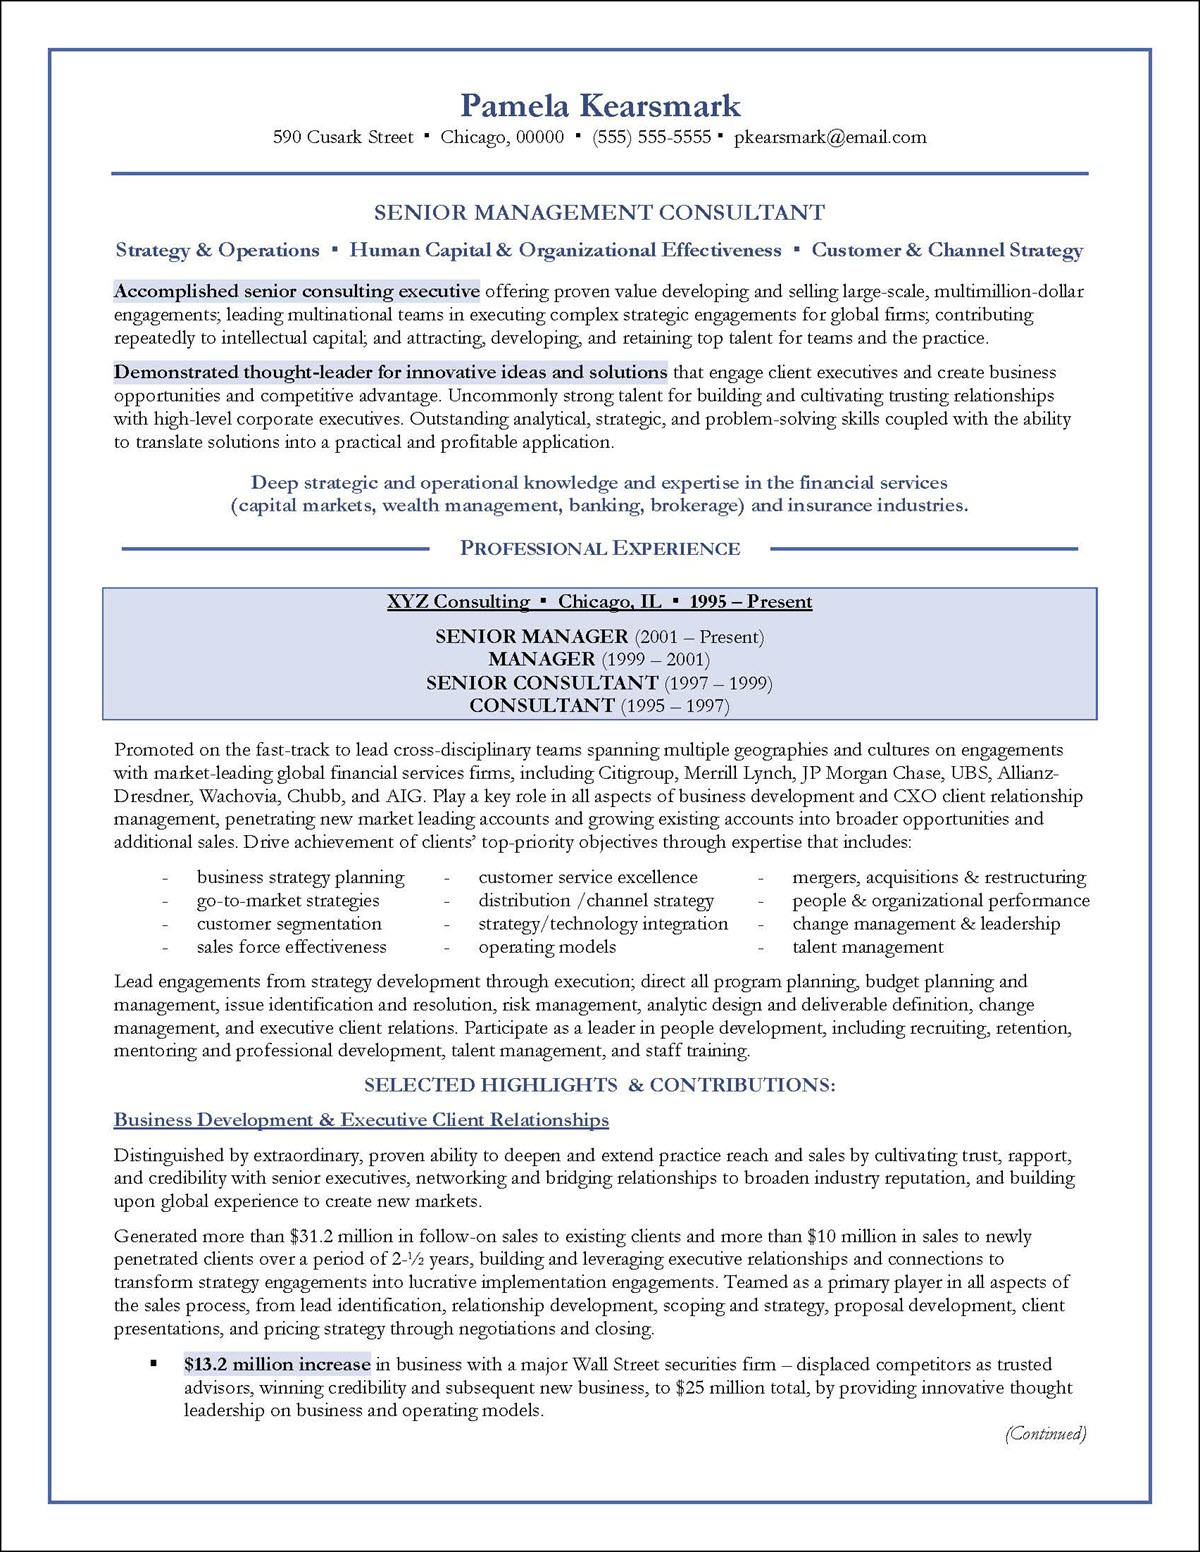 management consulting resume example for executive management consulting resume example page 1